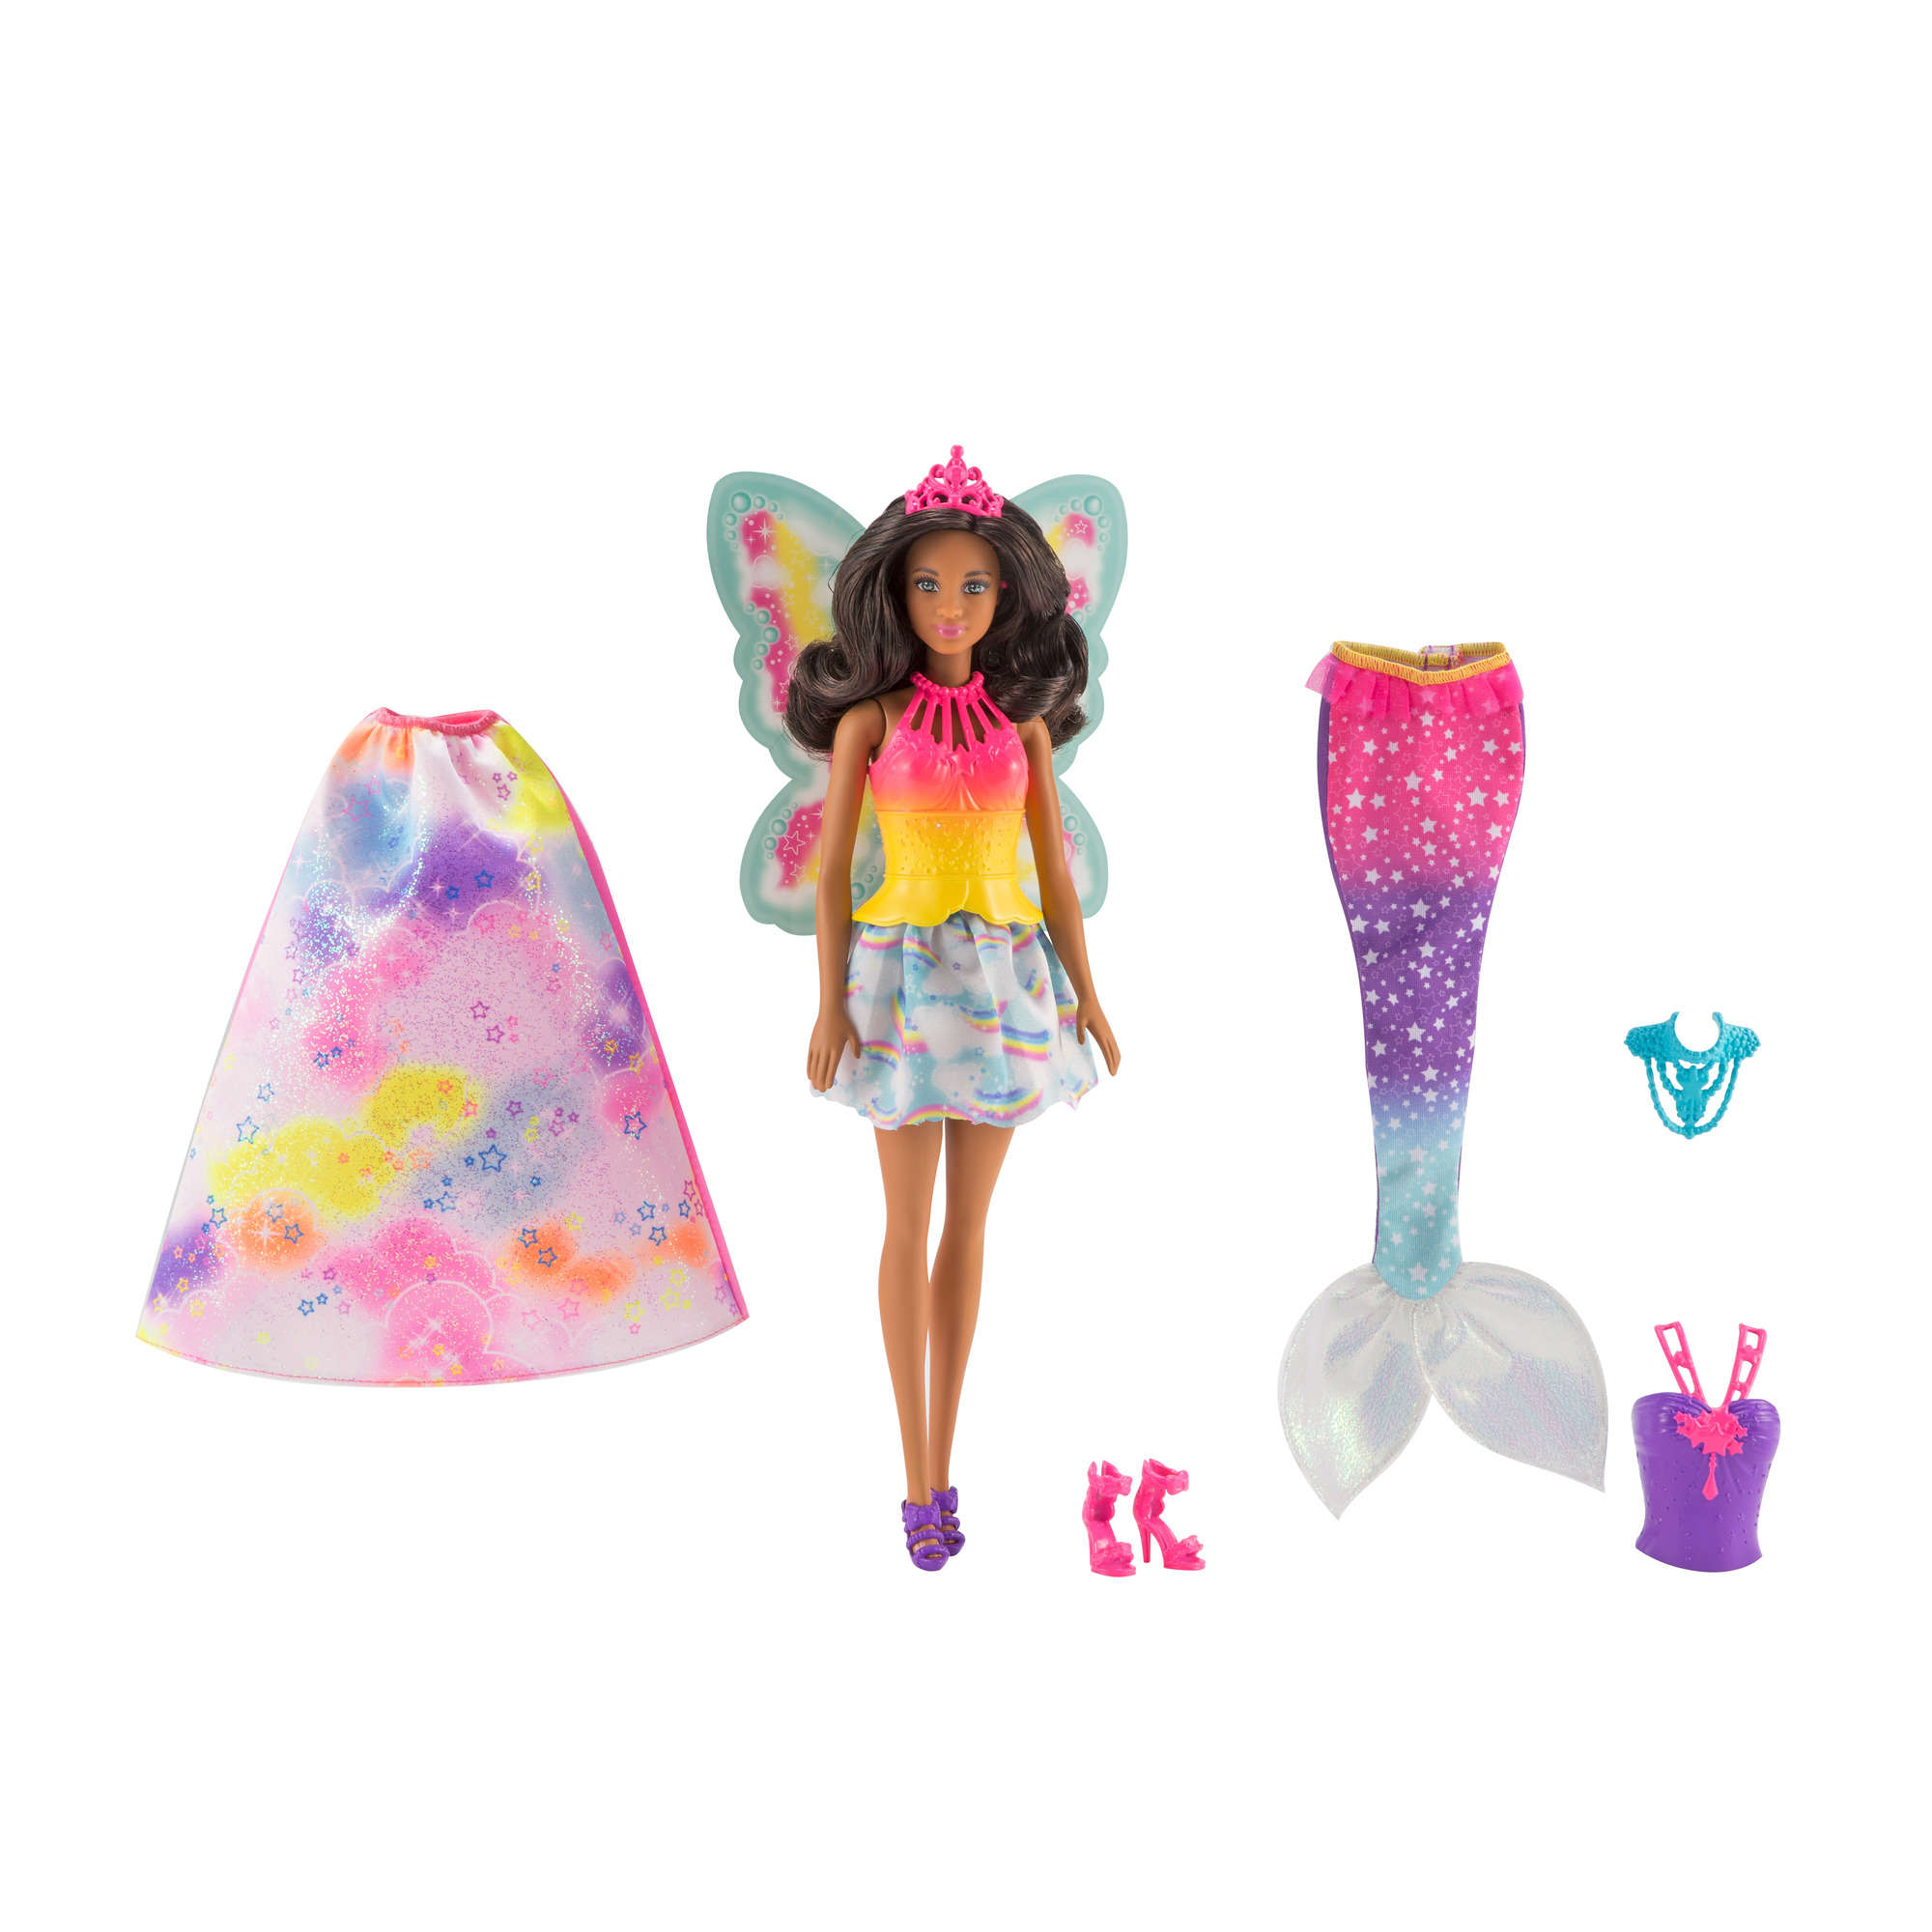 Barbie Dreamtopia Barbie Doll with 3 Fairytale Costumes